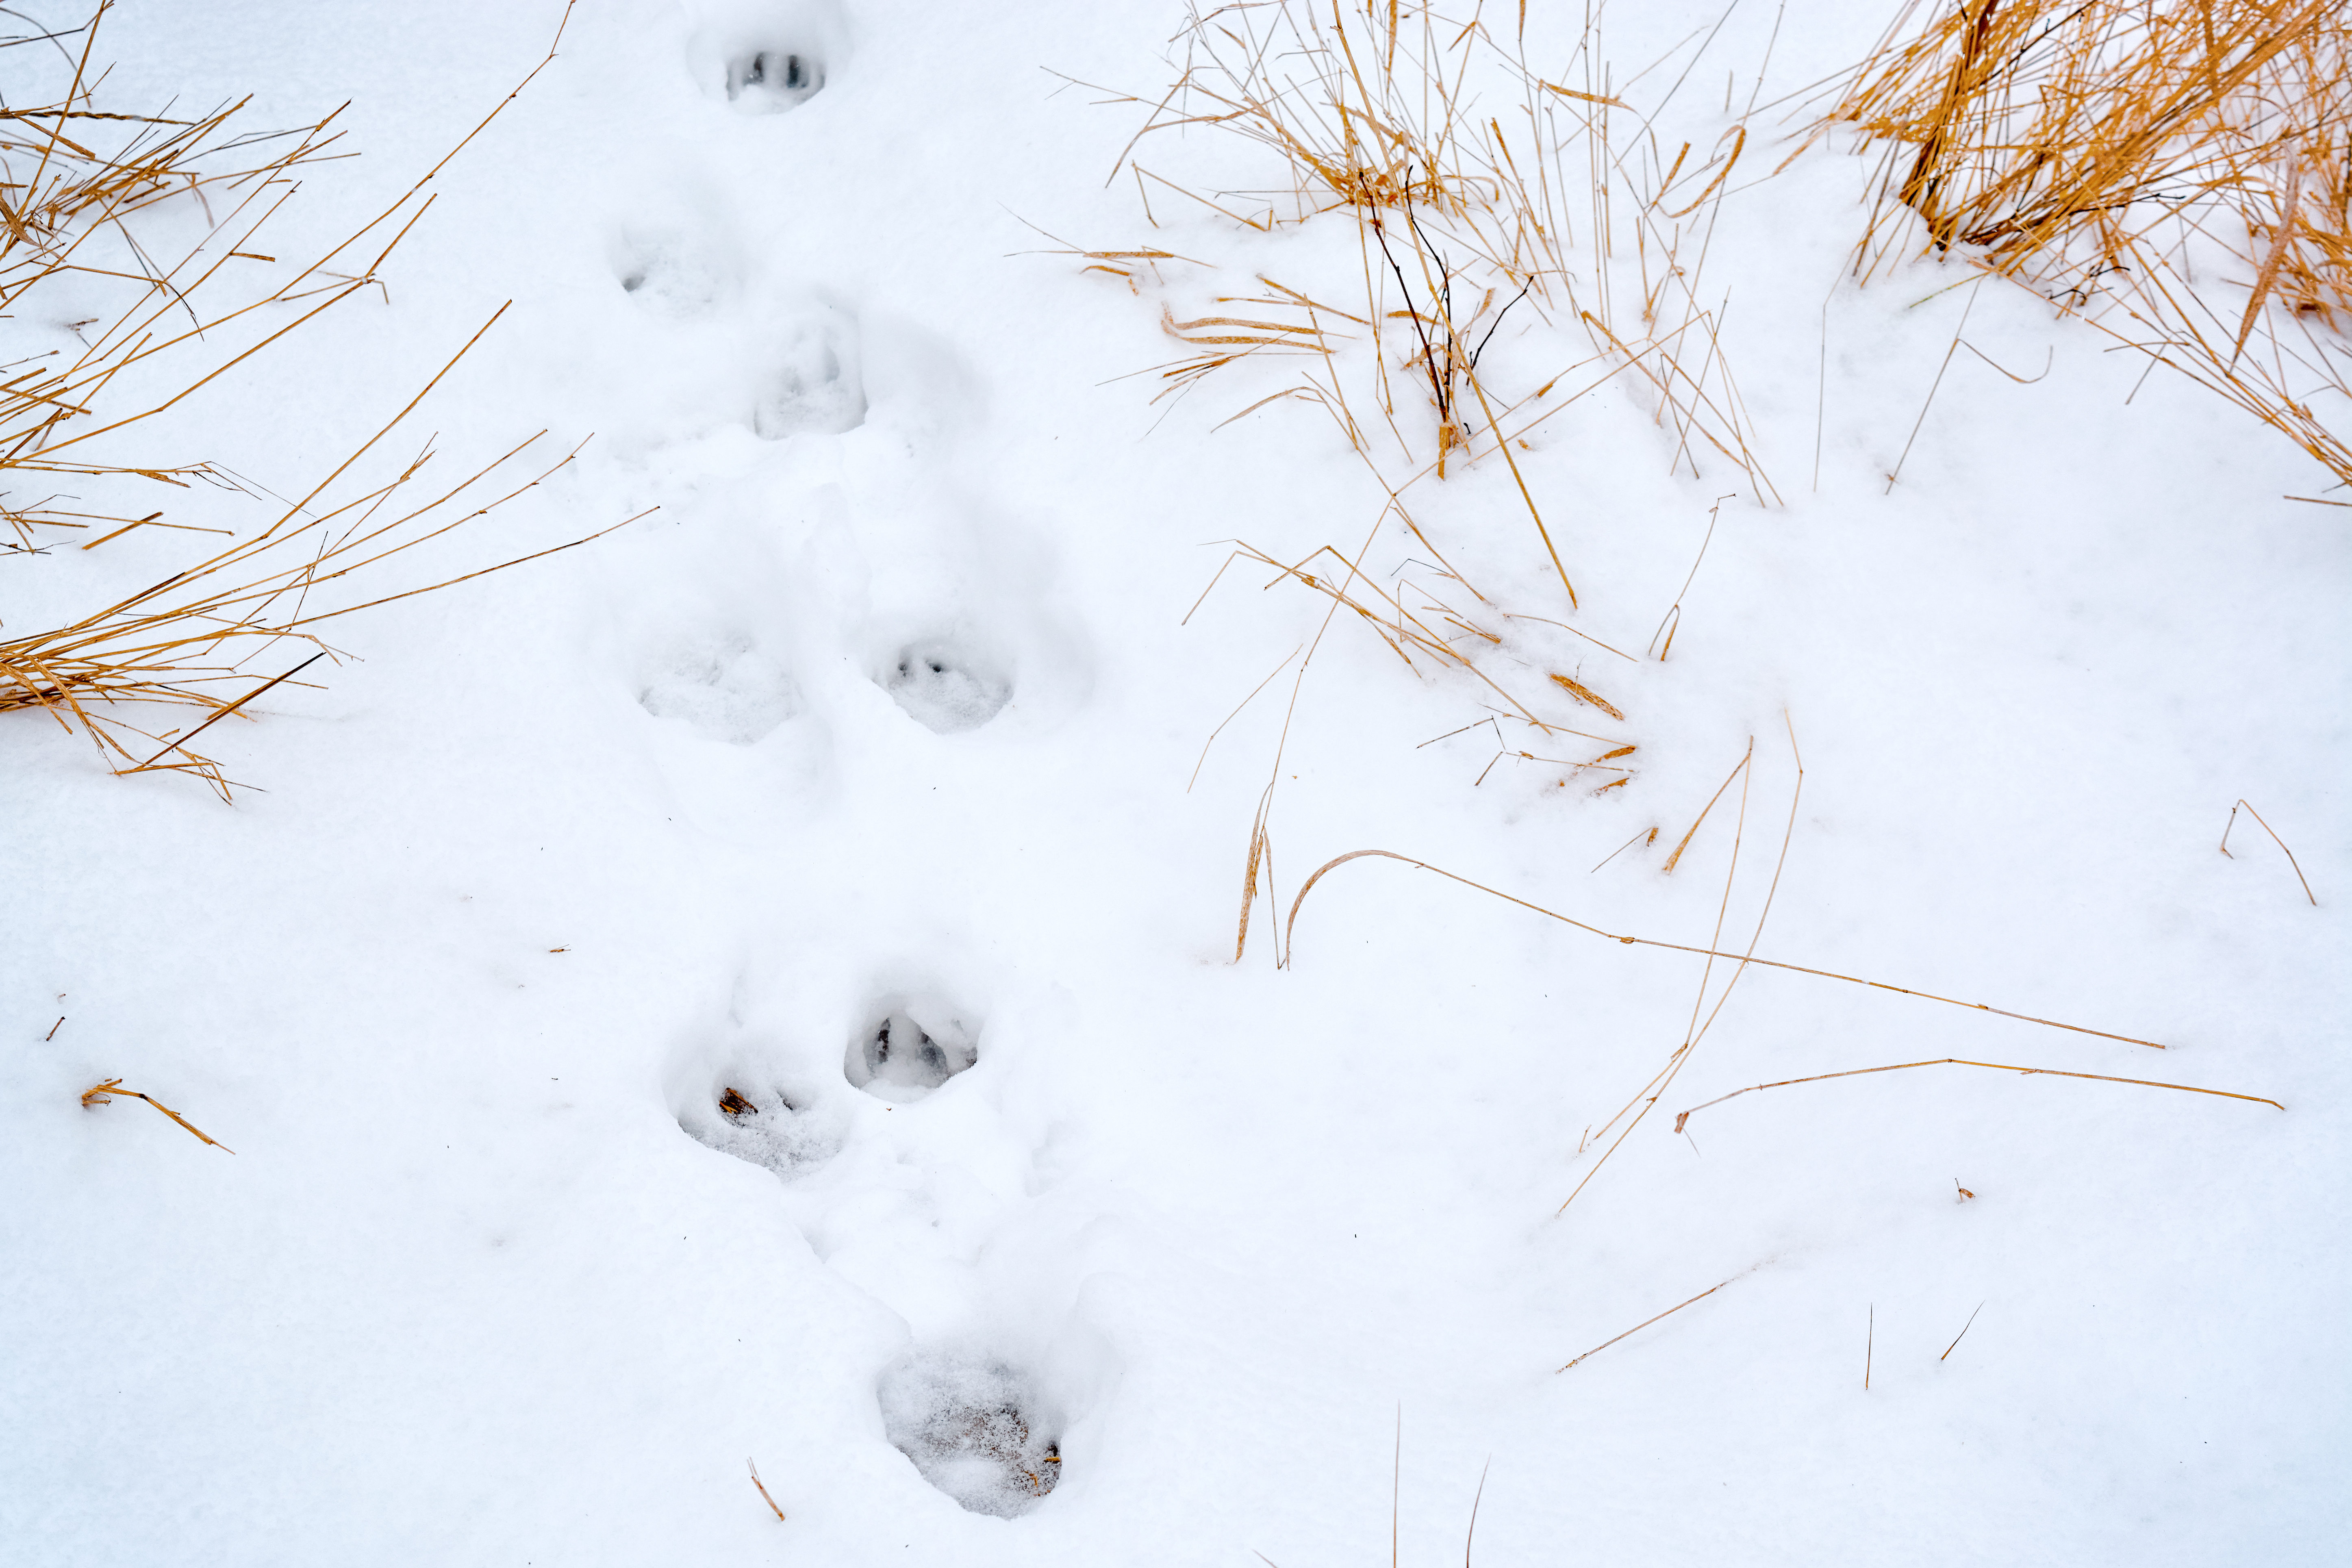 Here in the Boreal Forest we are surrounded by animals. They can be difficult to see, but luckily there are other ways to find out that they were there. Animal tracks are easy to see in the snow. Take a walk this winter and see how many animals you can identify.